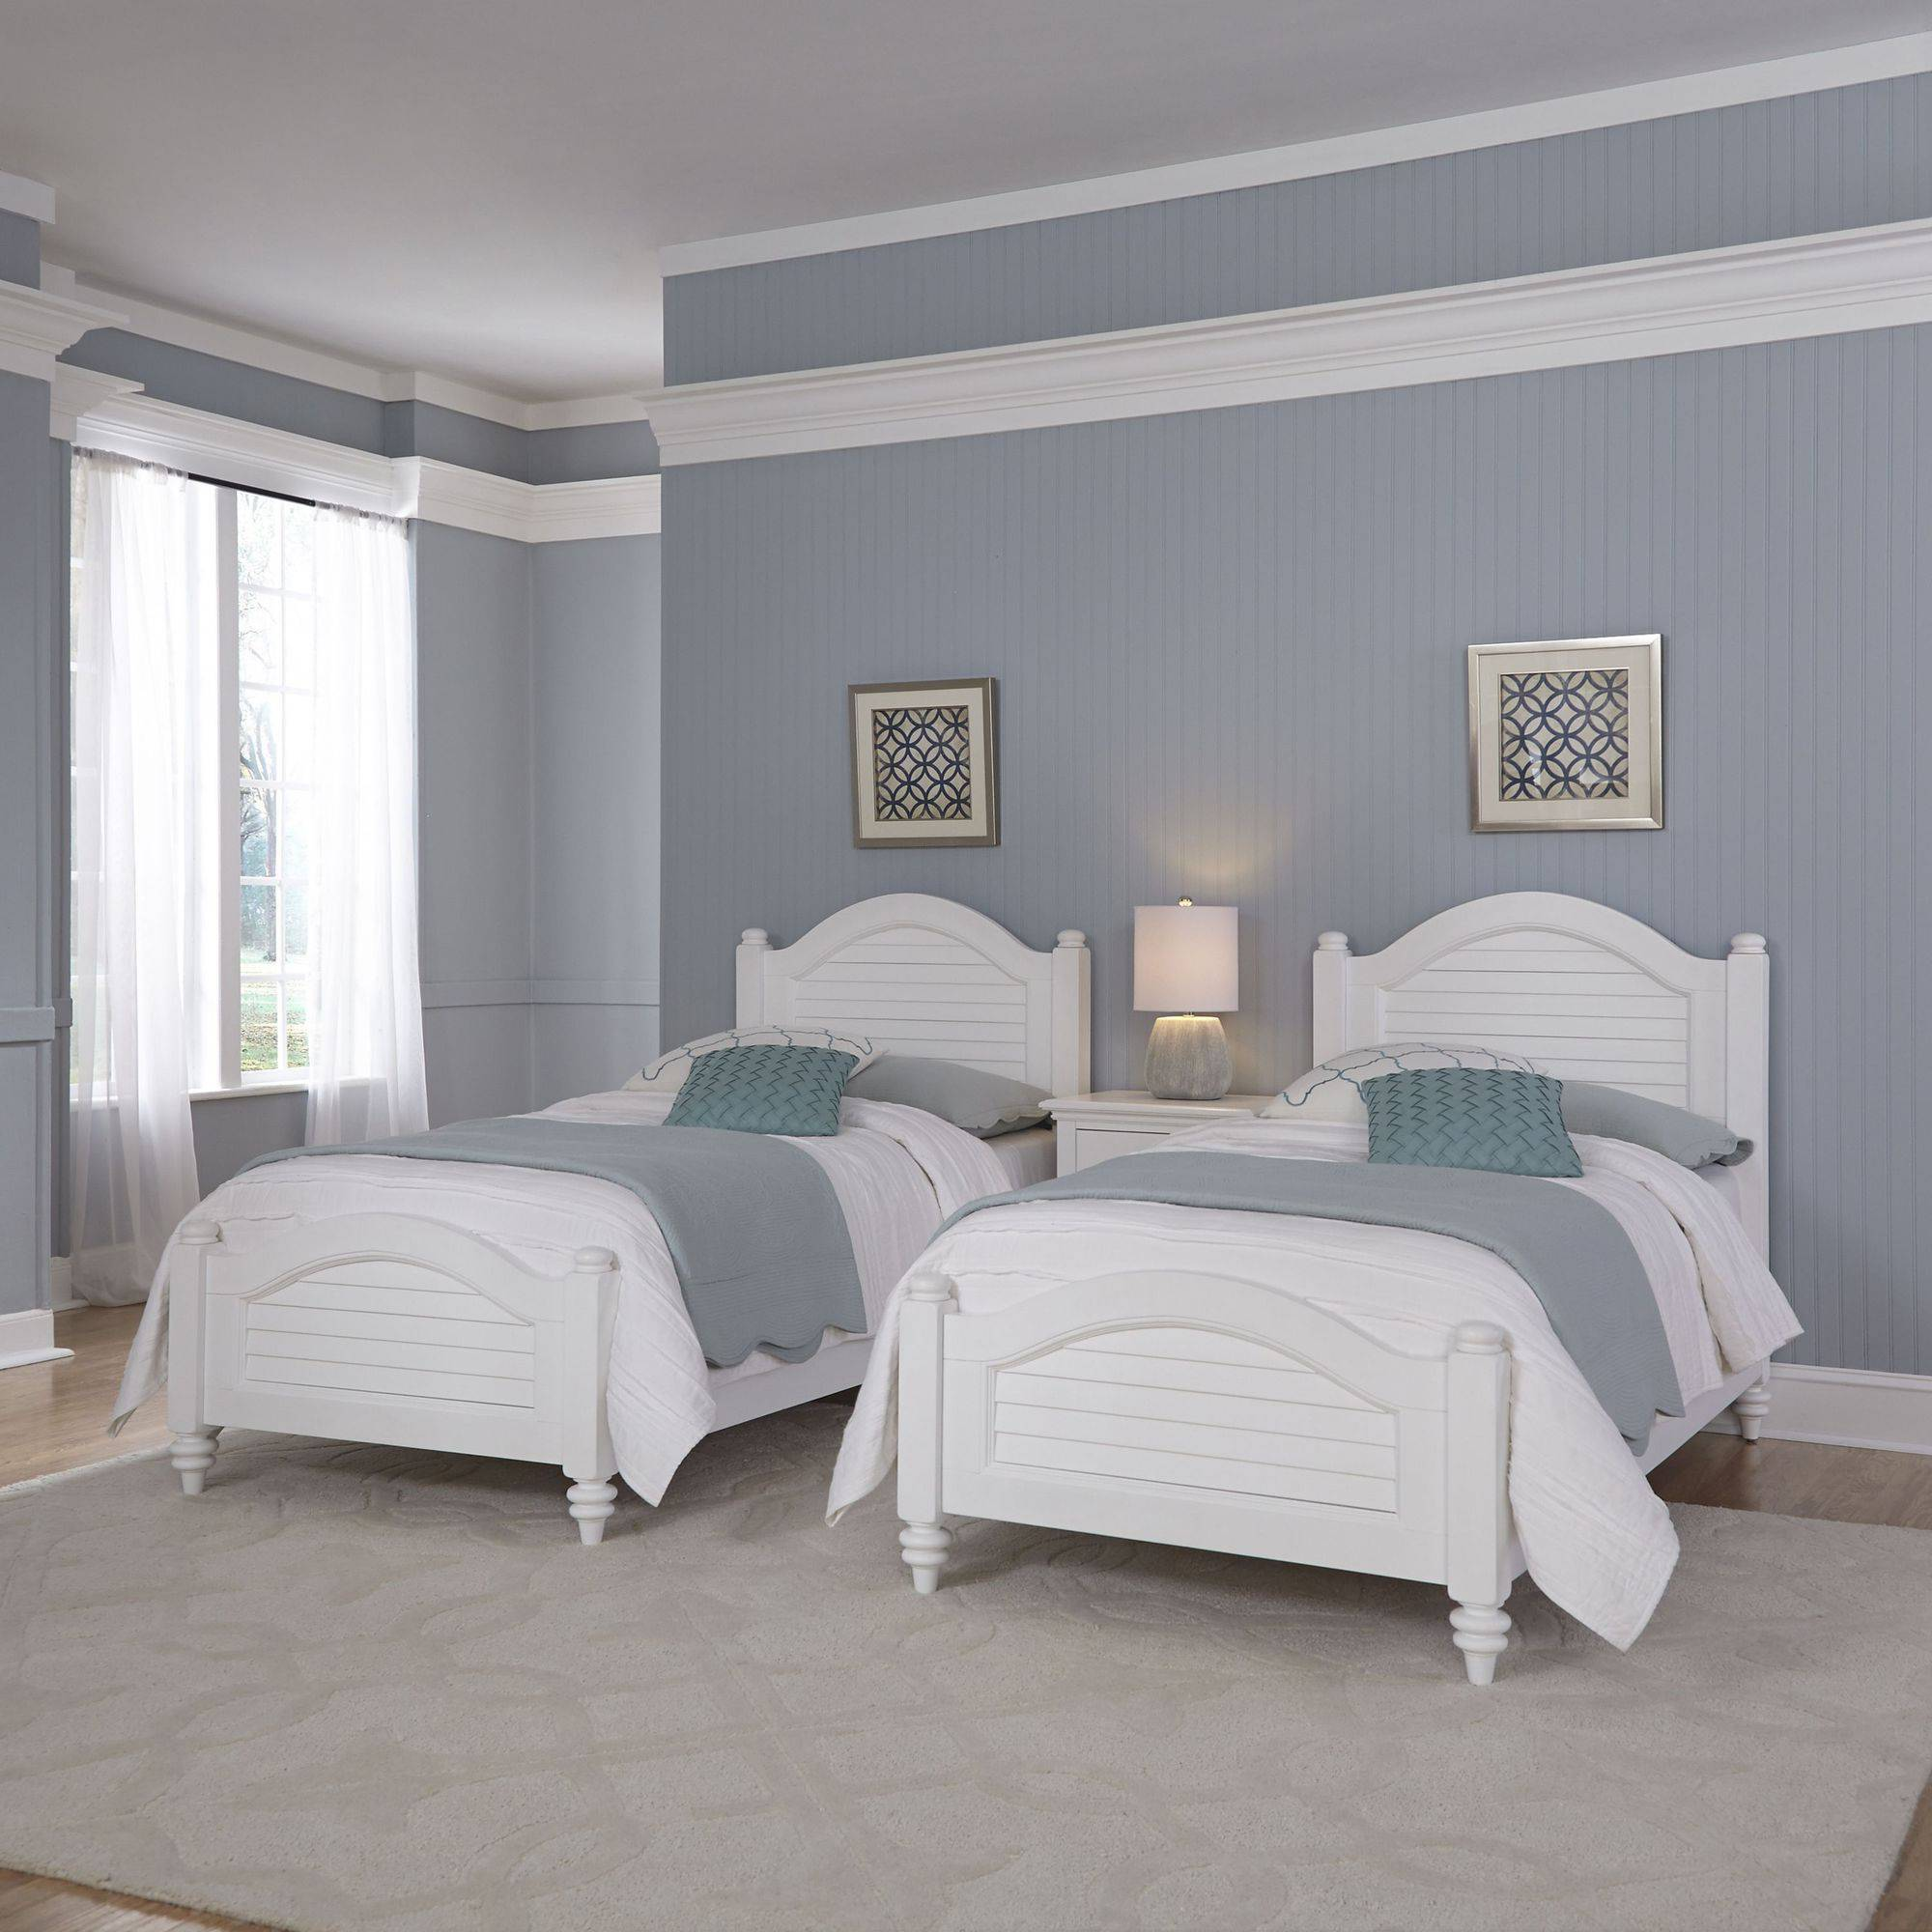 Home Styles Furniture Bermuda White 2 Twin Beds and Night Stand